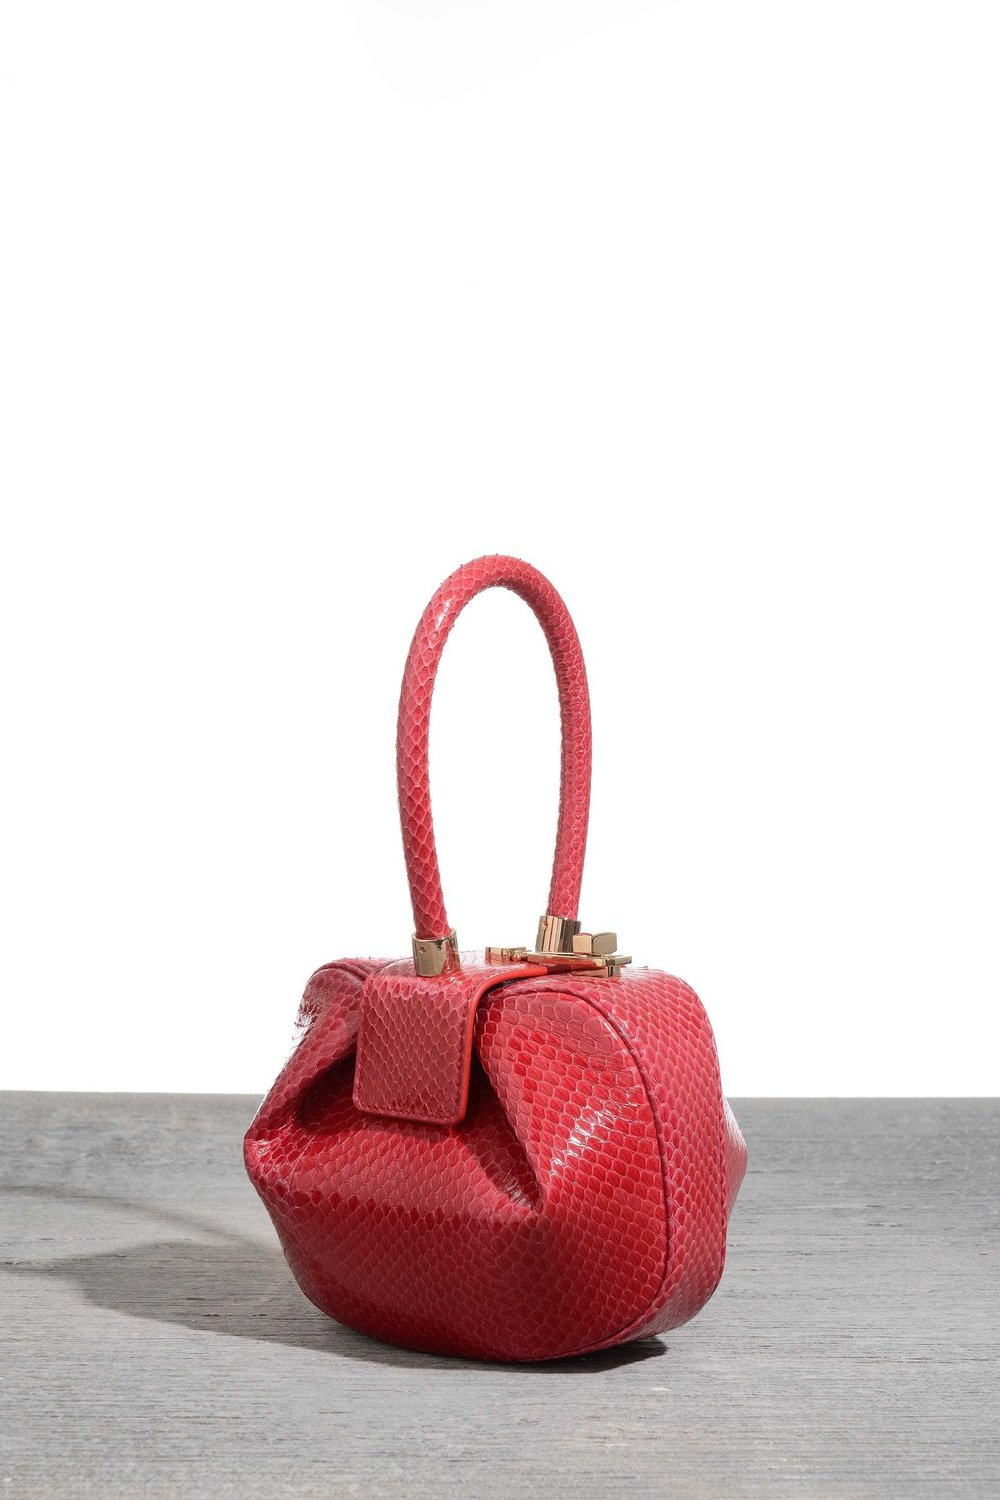 Demi bag in red snake, $2,495, at Net-a-Porter